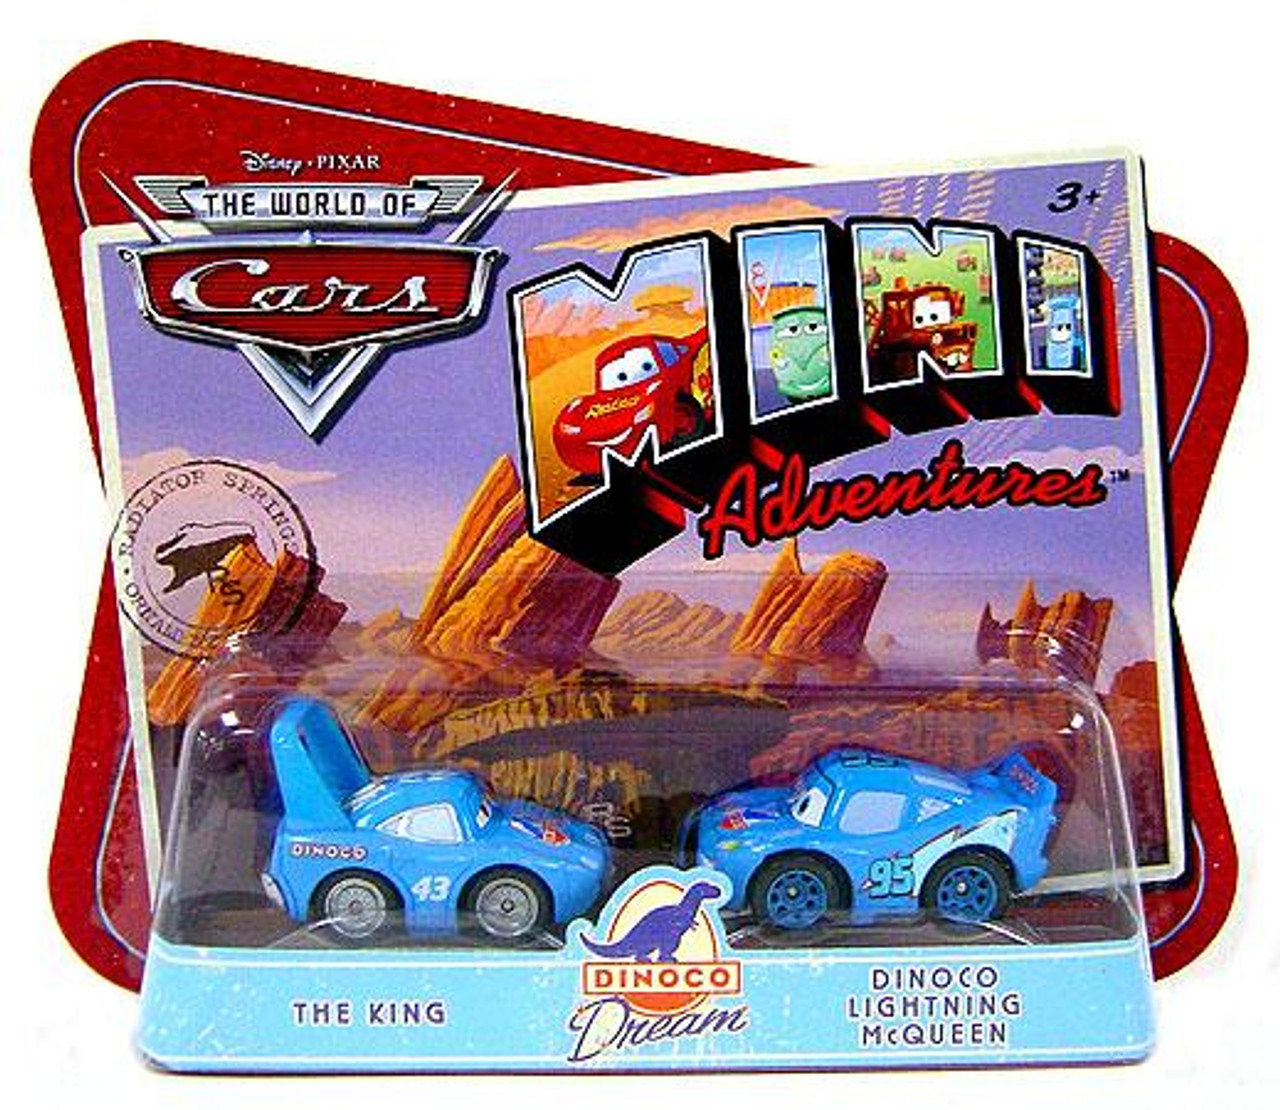 Disney Cars The World of Cars Mini Adventures Dinoco Dream Plastic Car 2-Pack [The King & Dinoco Lightning McQueen]